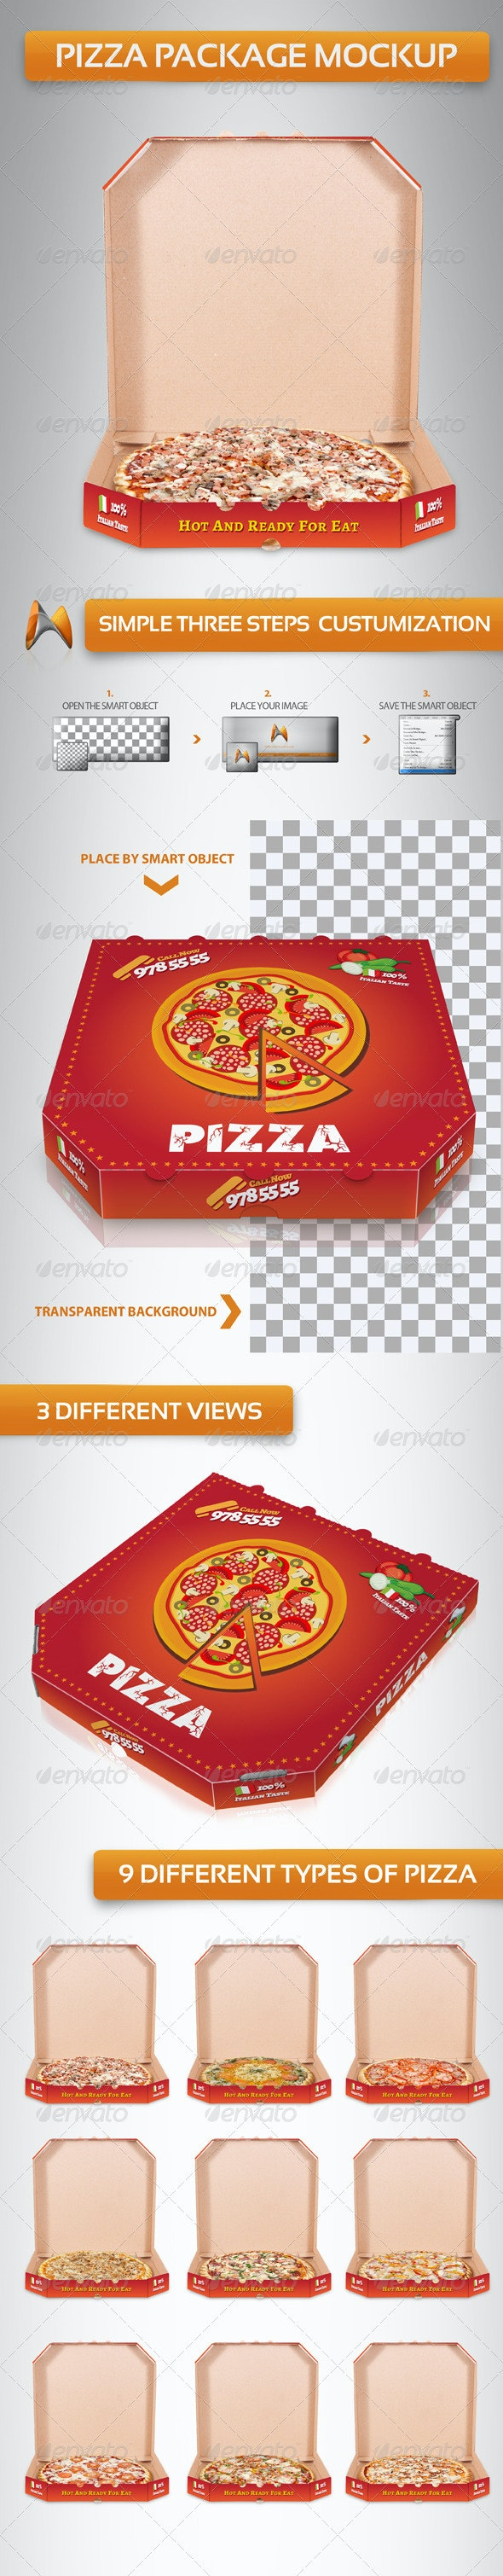 Pizza Package Mockup - Food and Drink Packaging